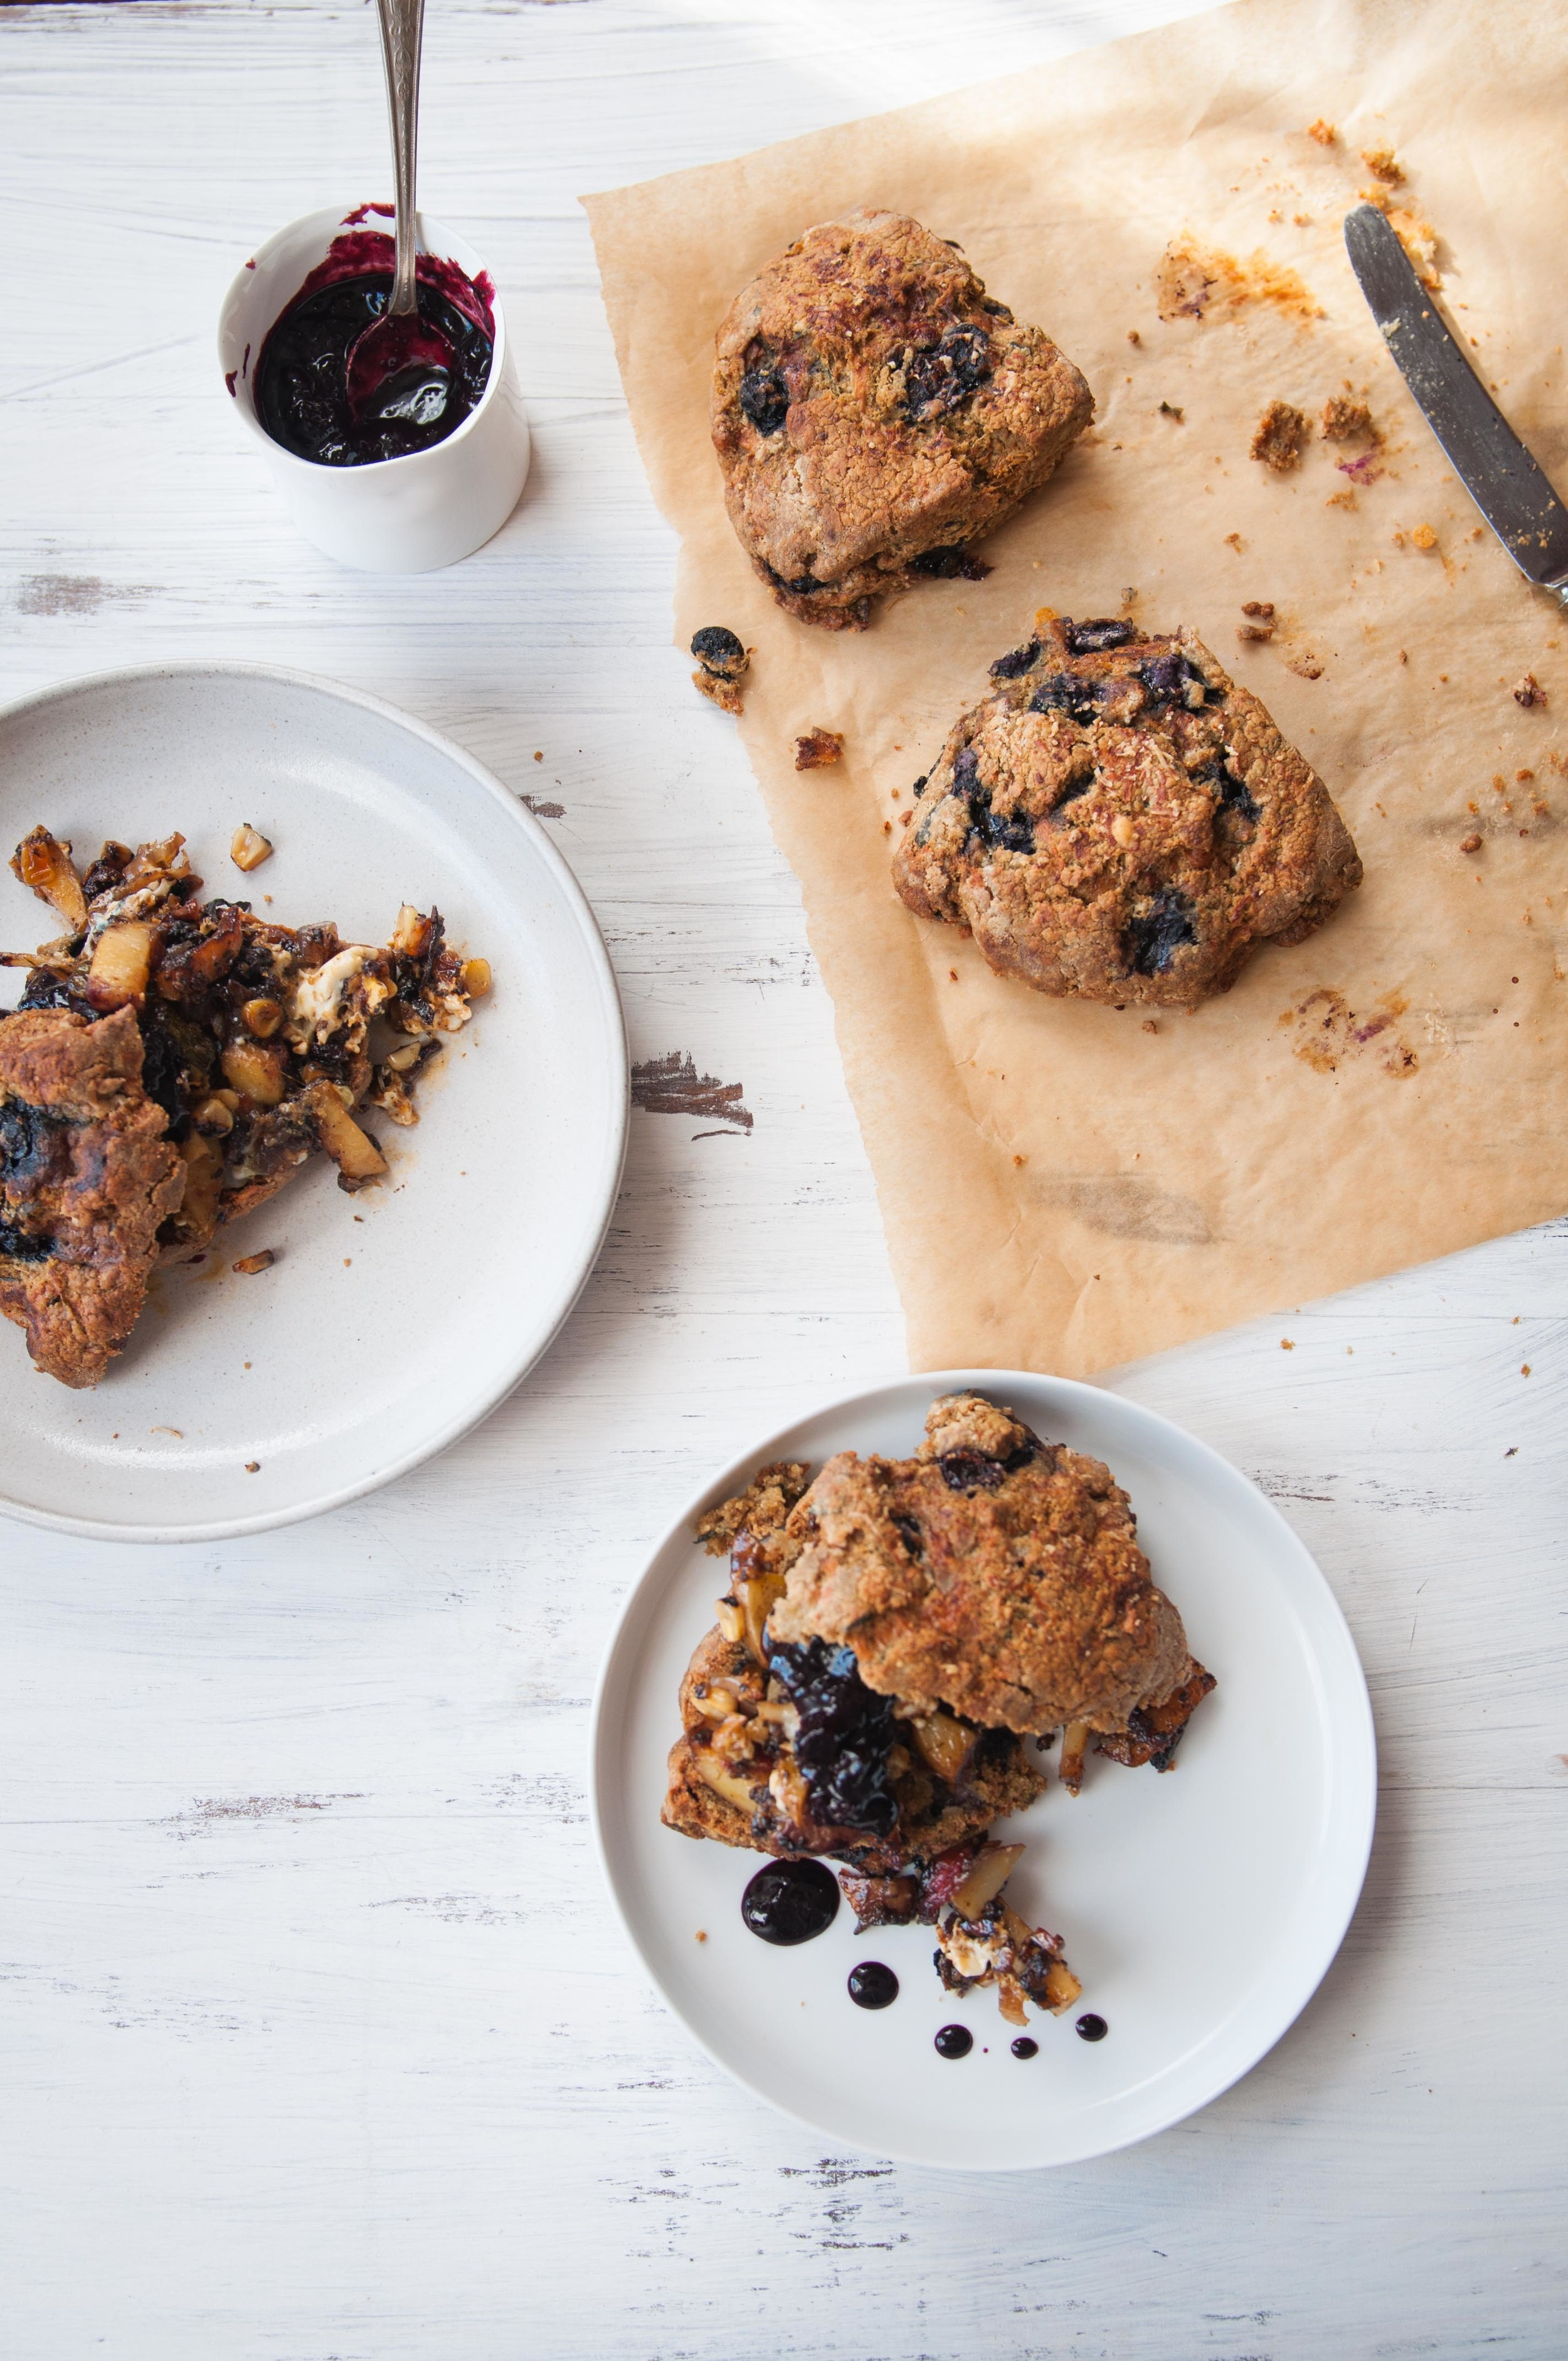 Gluten free blueberry scones are perfect for a Holiday brunch with blood pudding hash and fried egg.